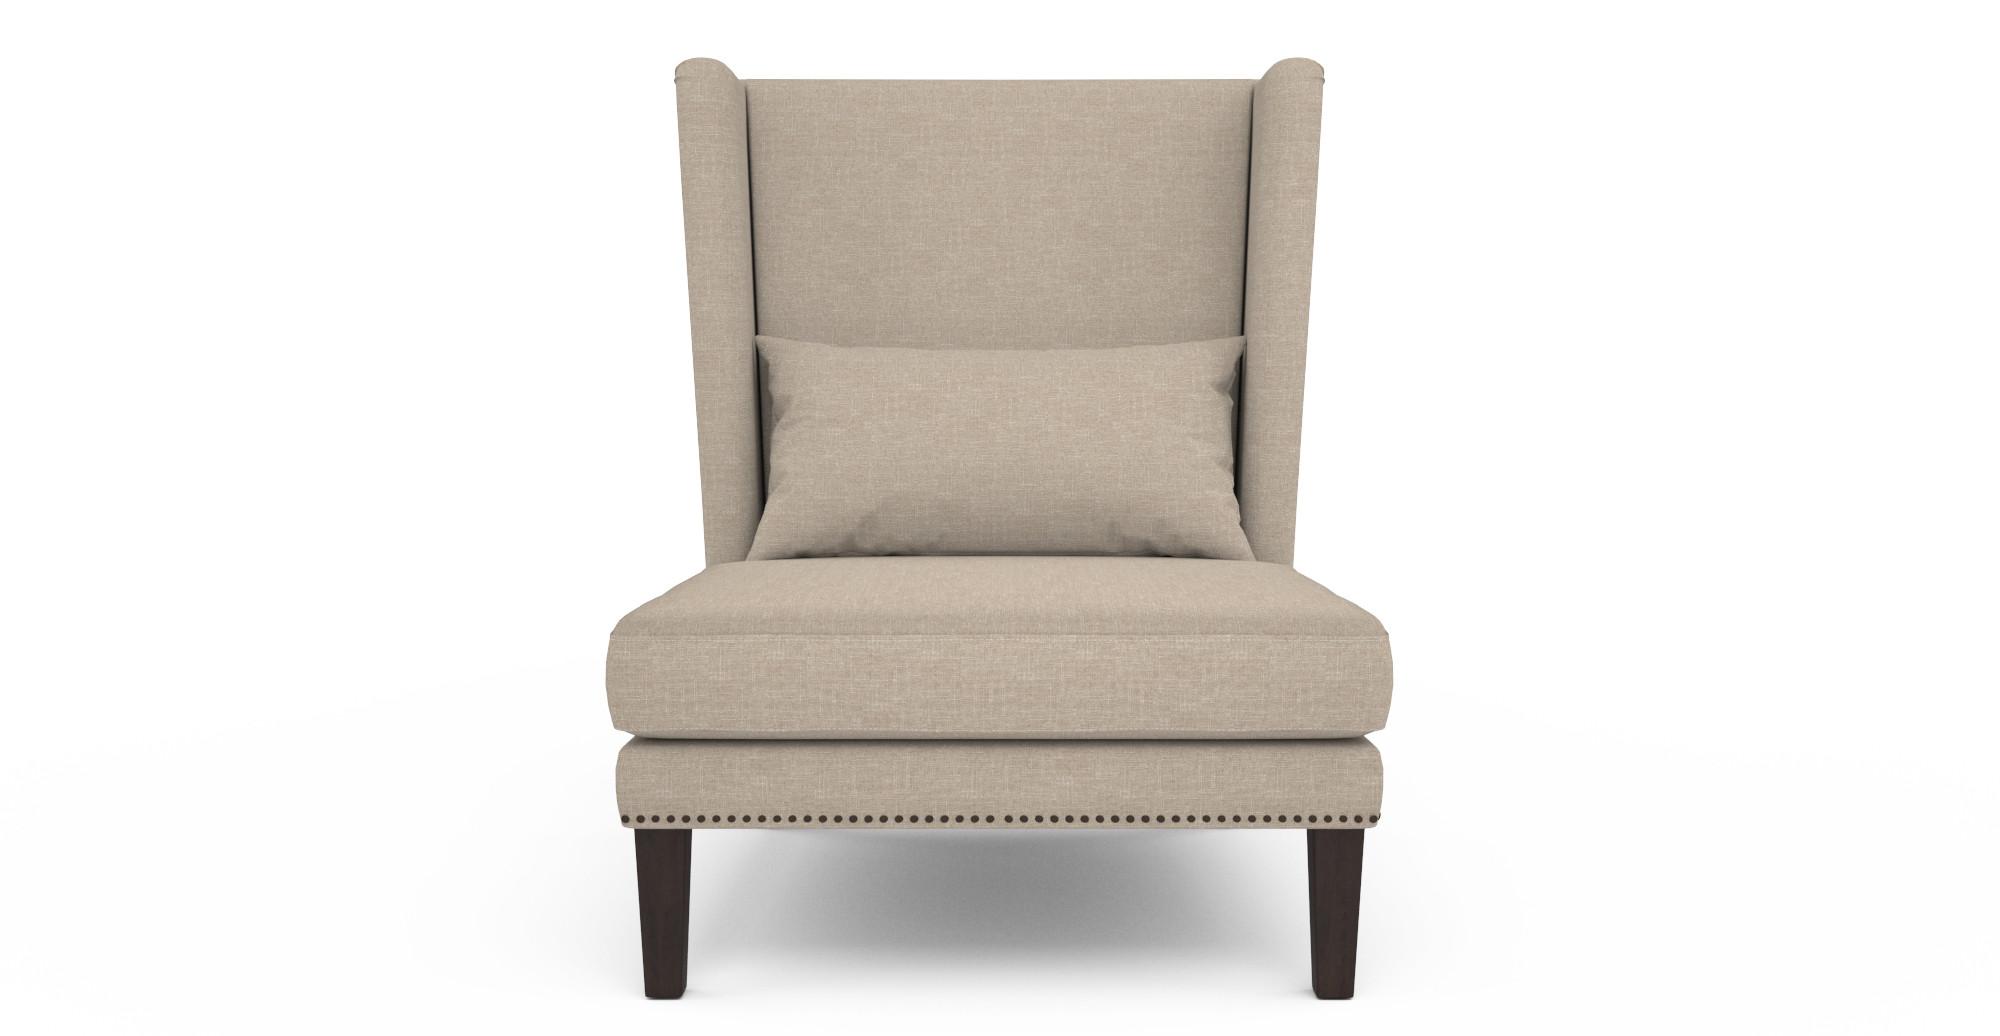 Beautiful wing back chair with Solid Strong wood Furniture Design for Dining chair and Living Room Chair Ideas